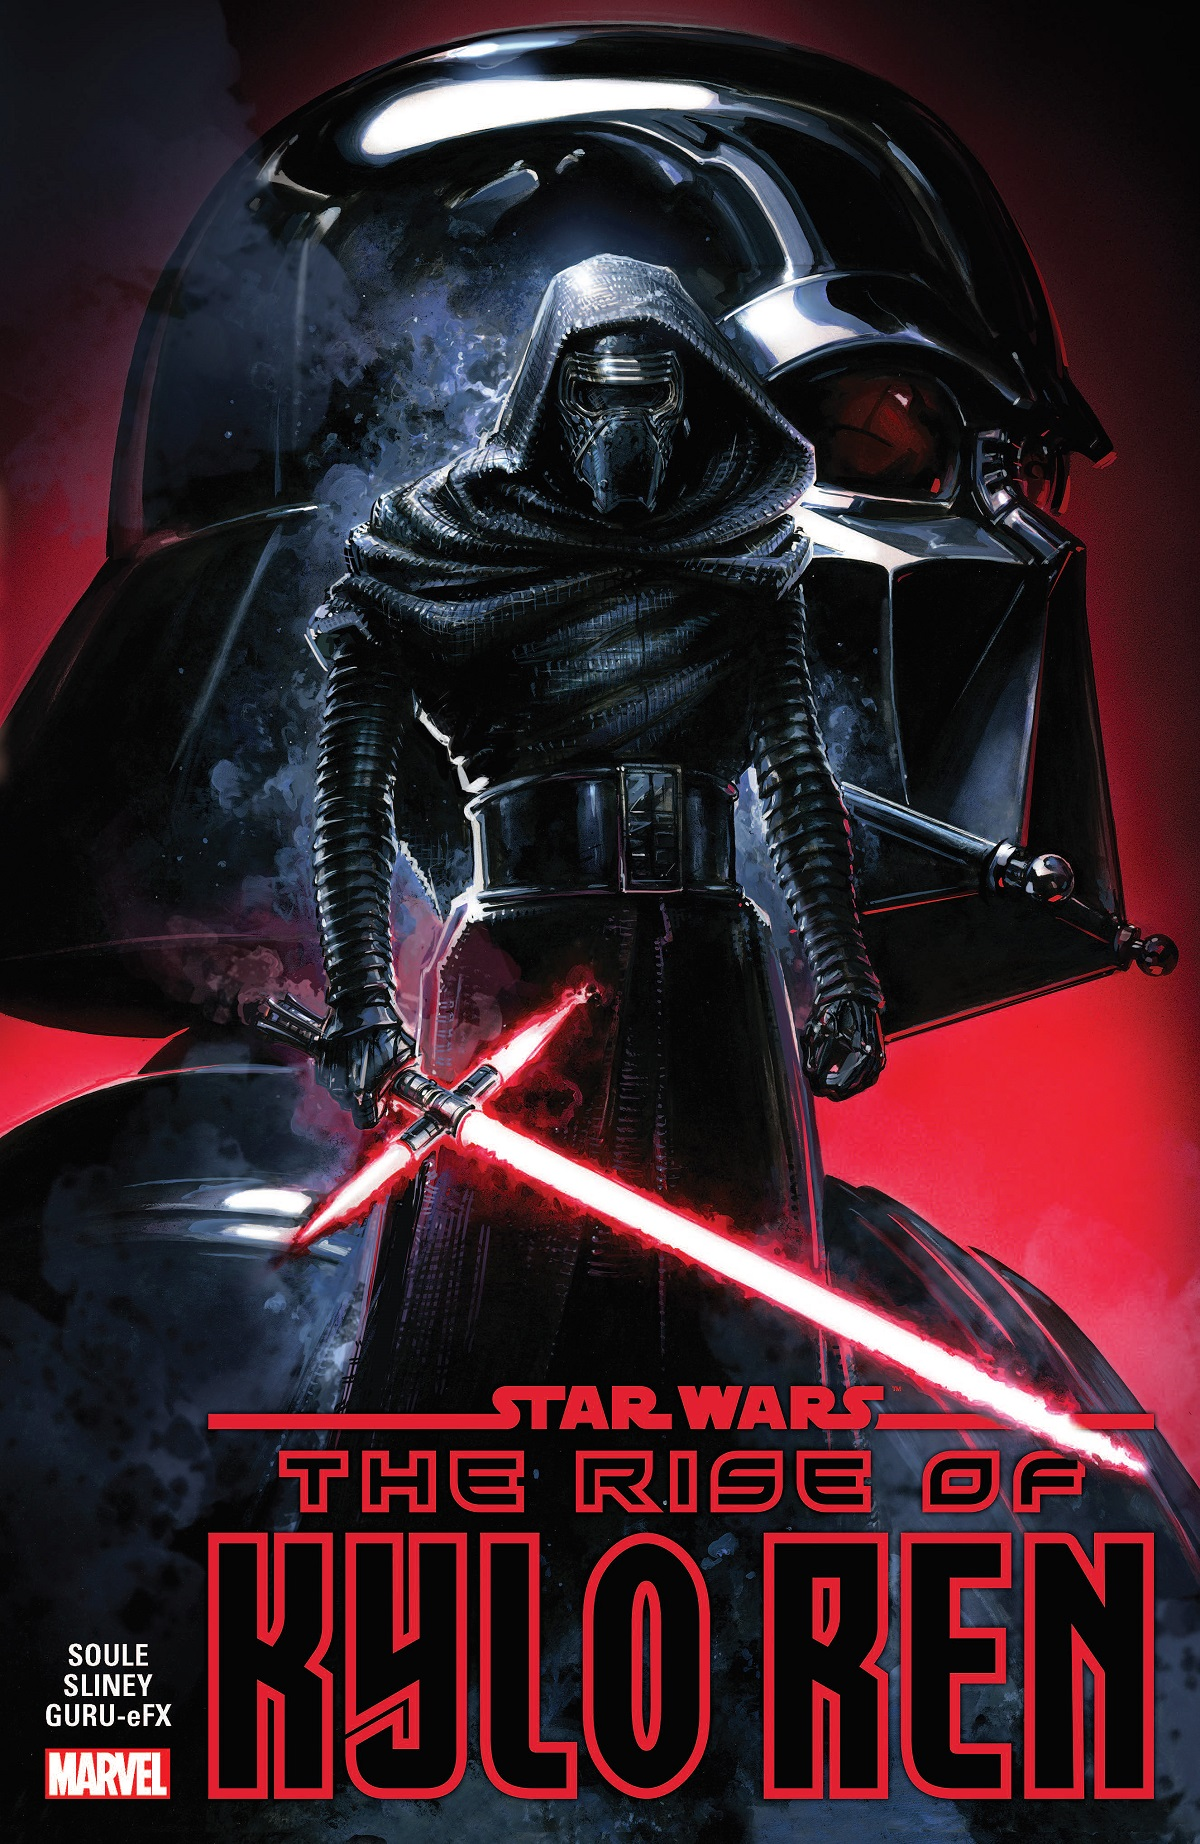 Star Wars: The Rise of Kylo Ren (Trade Paperback)